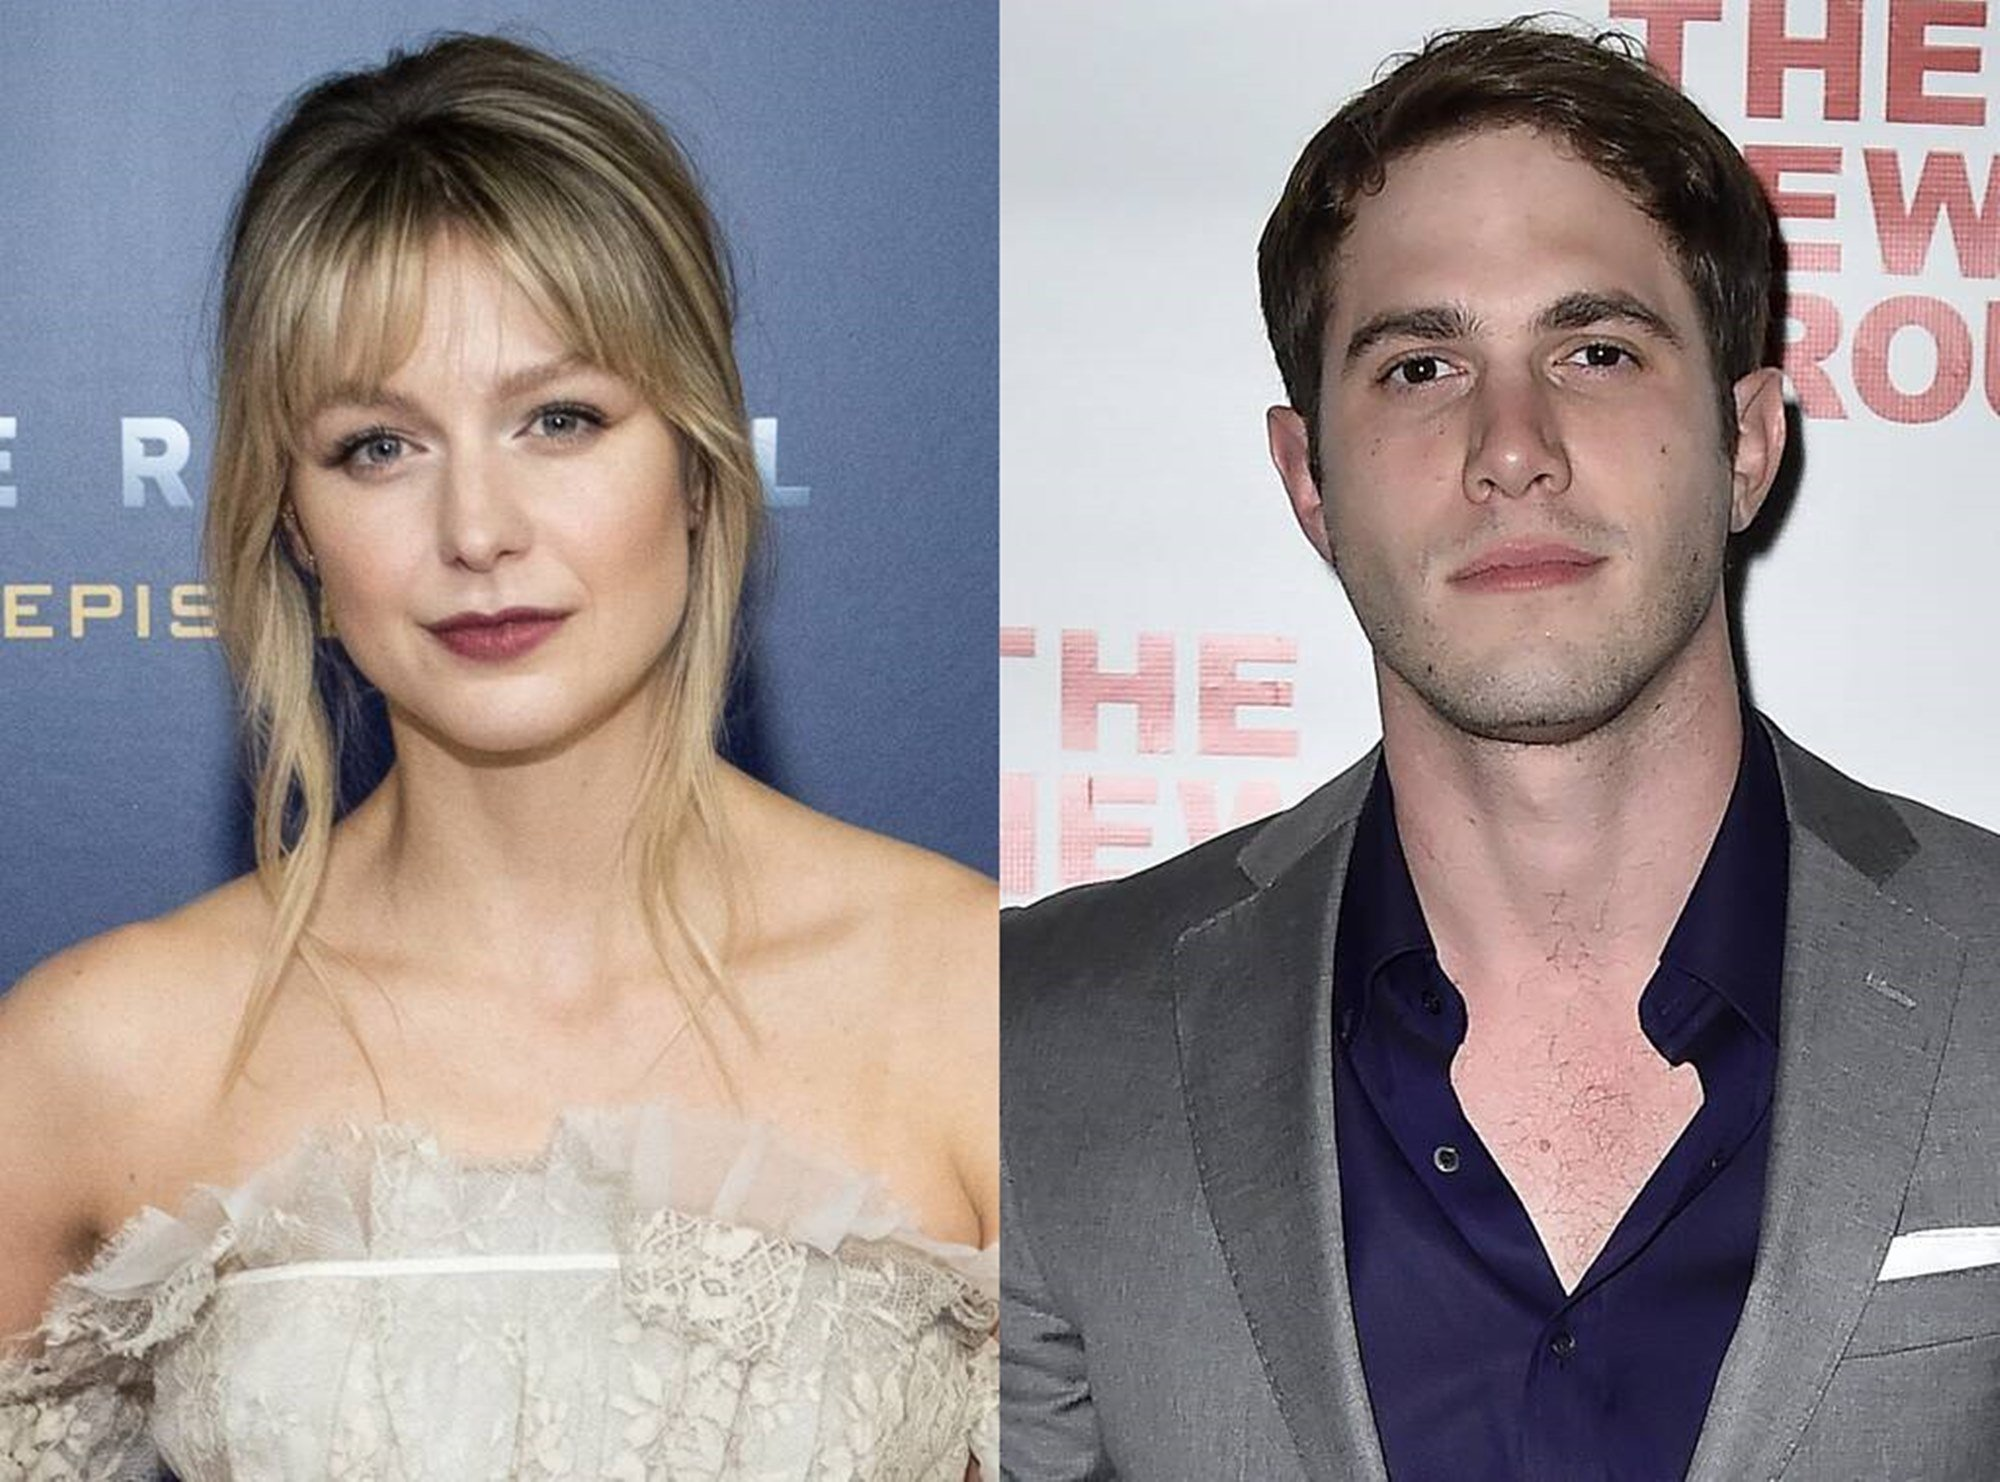 Melissa Benoist's Ex-Husband, Blake Jenner, Admits Responsibility For Abuse After 'Supergirl' Star's Viral Video — Critics Say He Is Still Behaving Like Most Abusers By Putting Some Of The Blame On The Victim